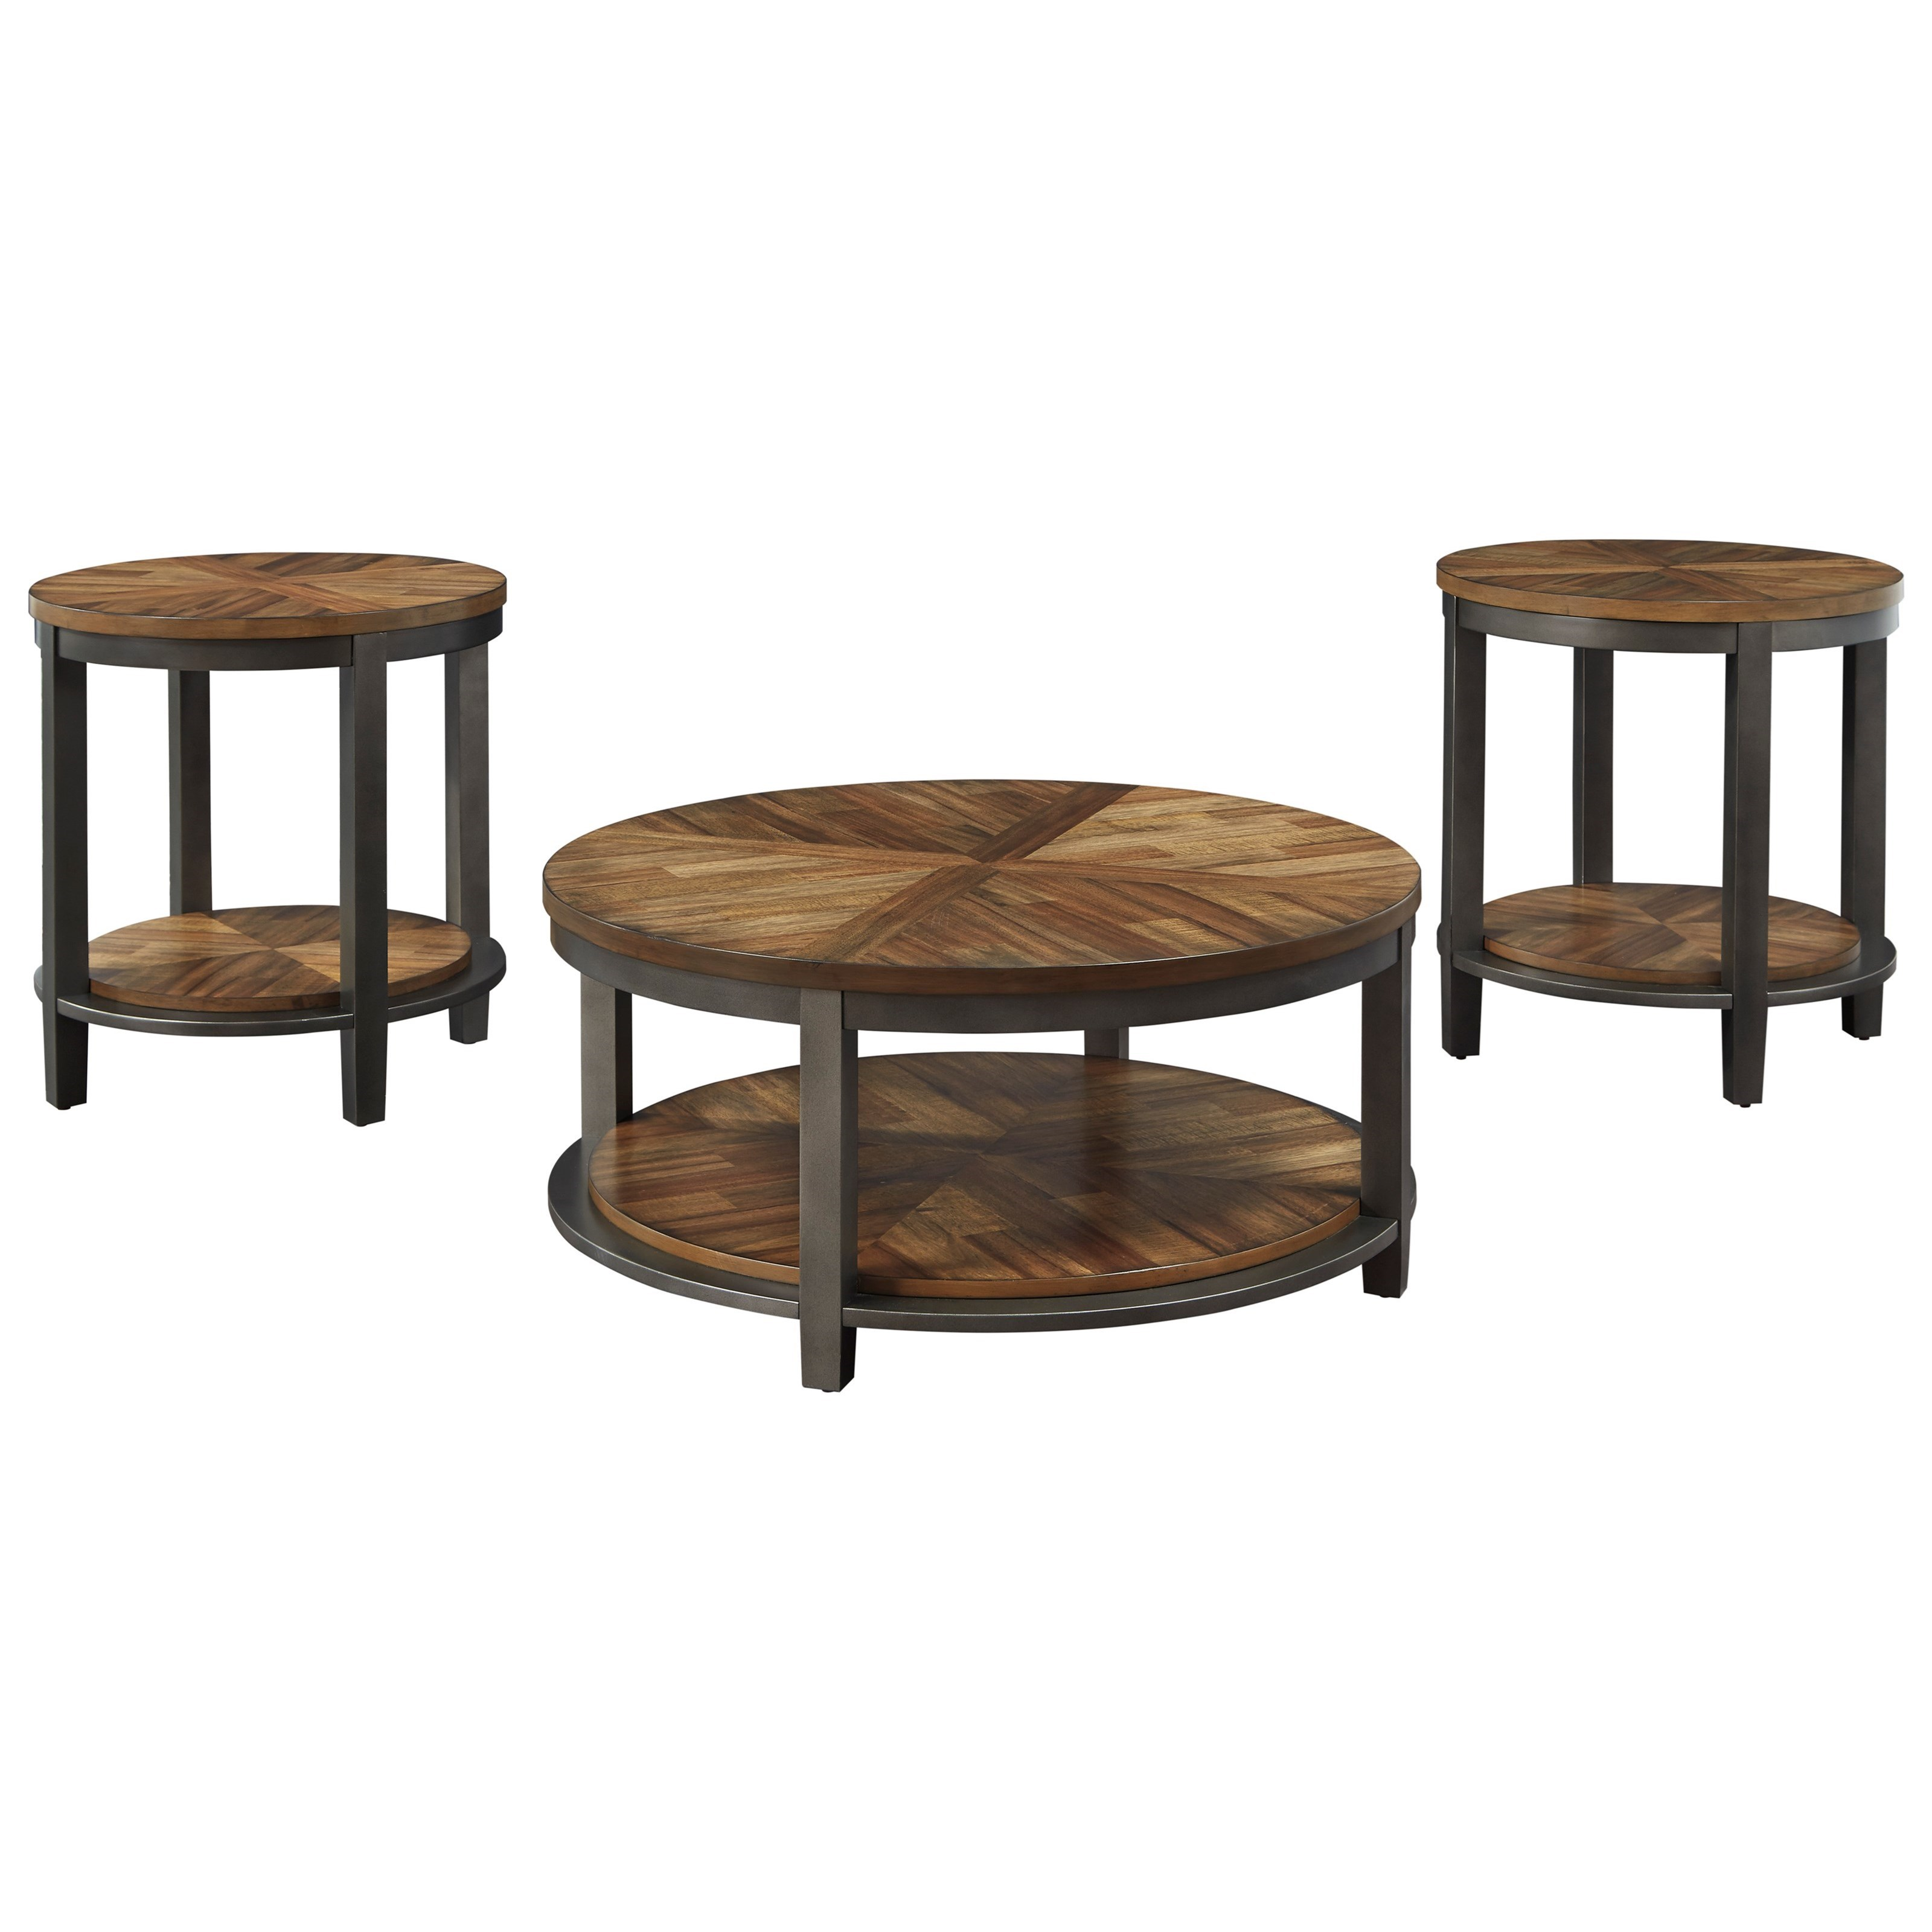 sports shoes 459e7 3f74b COVE Rustic Occasional Table Set by StyleLine at EFO Furniture Outlet